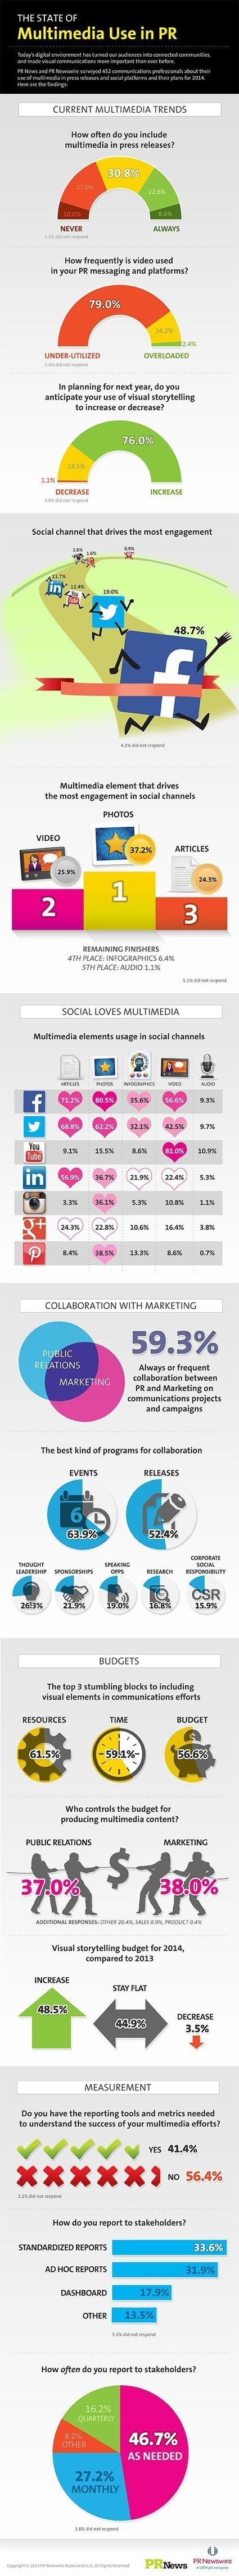 Video is Still Not a Big Enough Part of PR (Infographic) | Transforming small business | Scoop.it